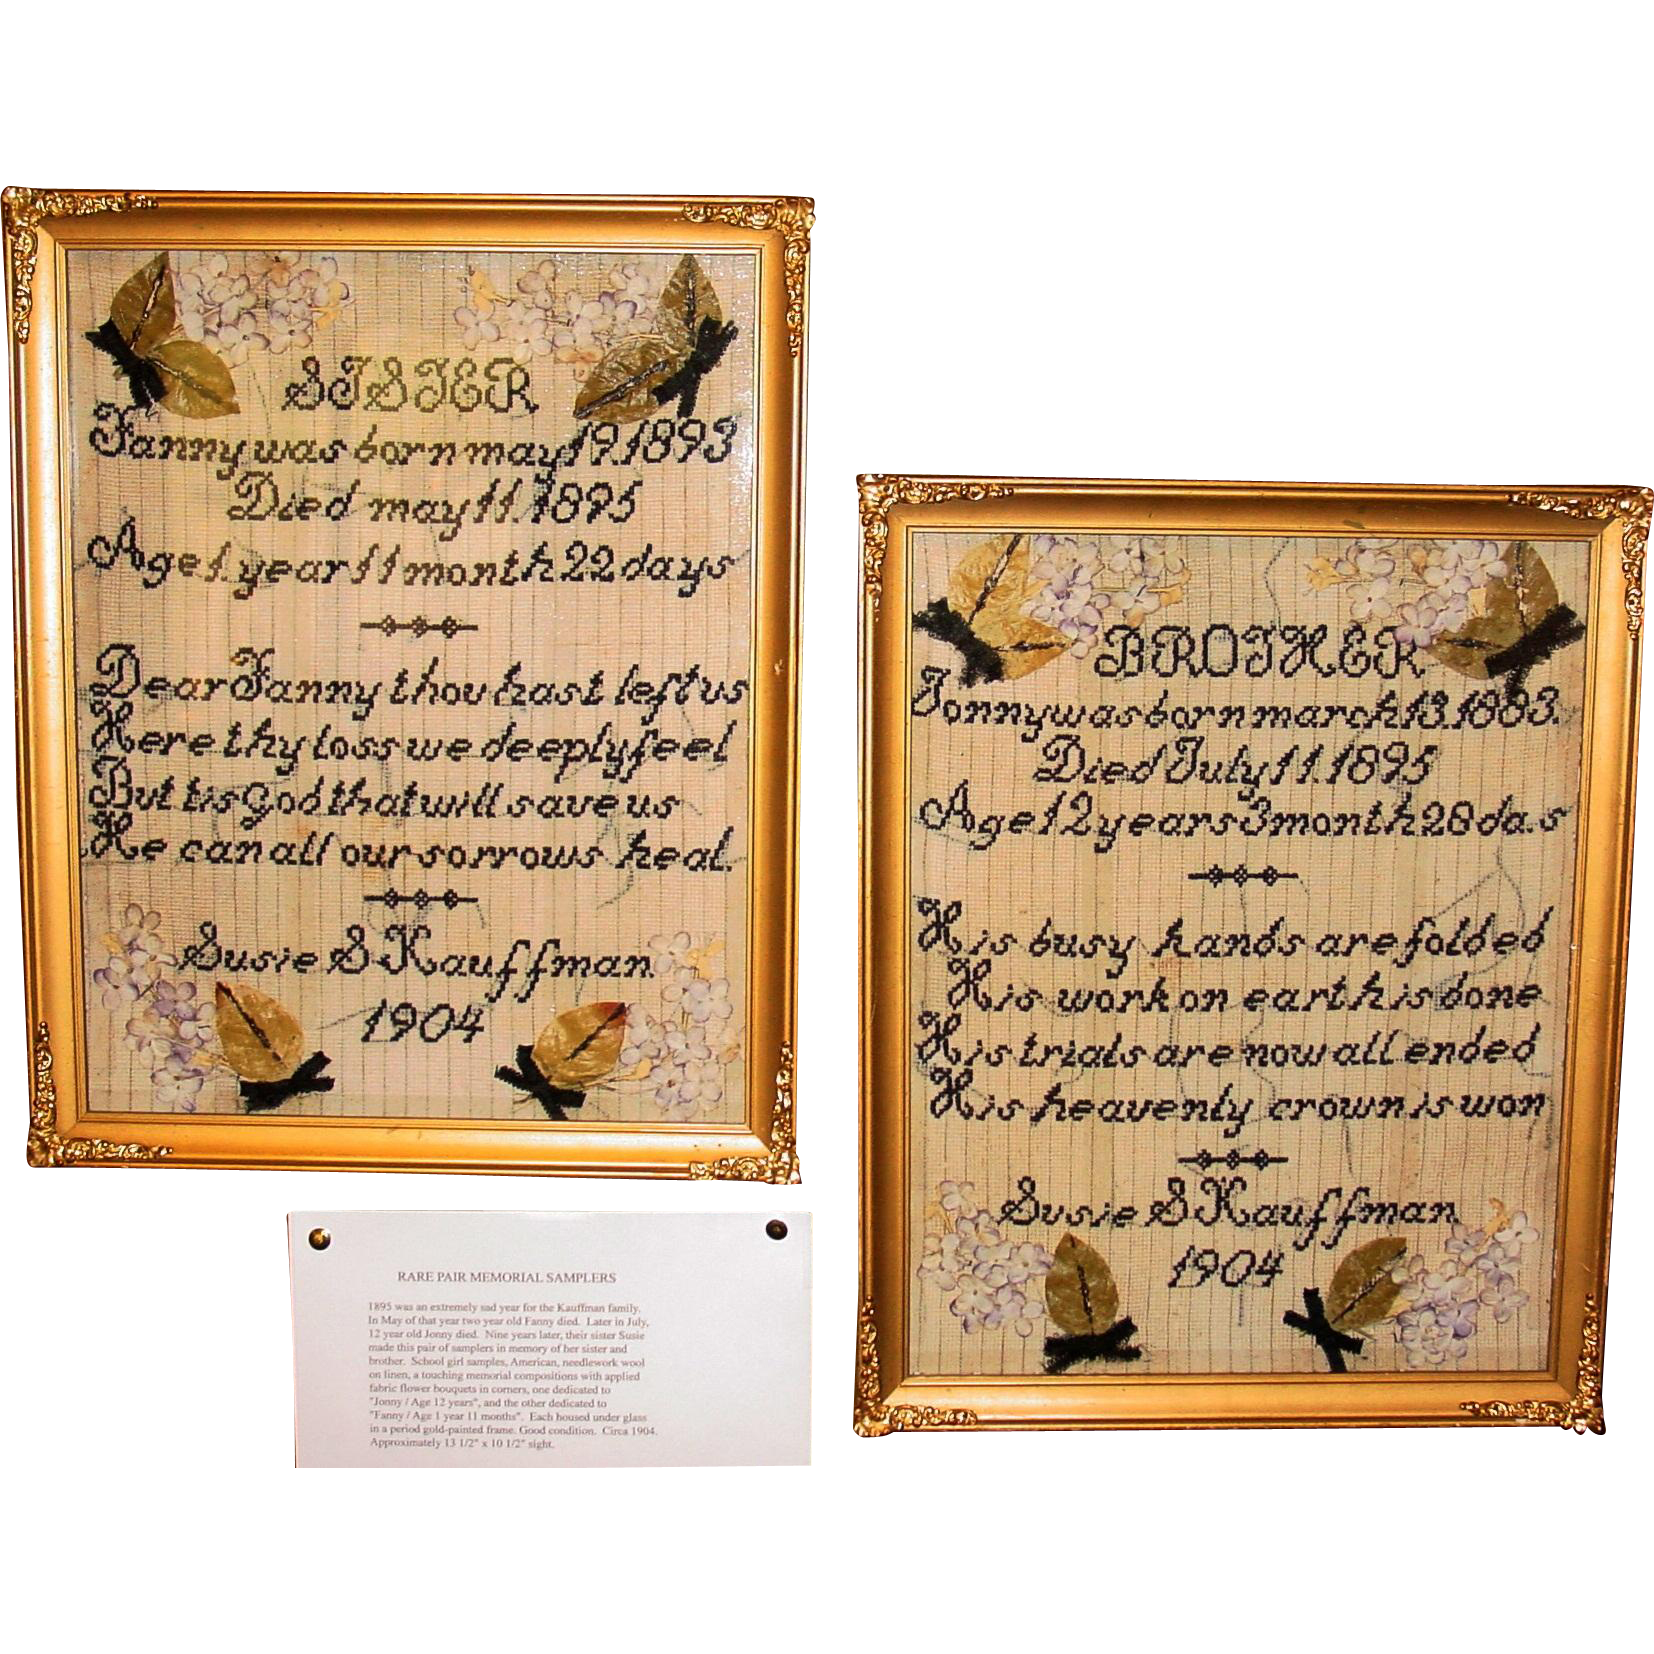 Touching pair of antique memorial samplers--1904